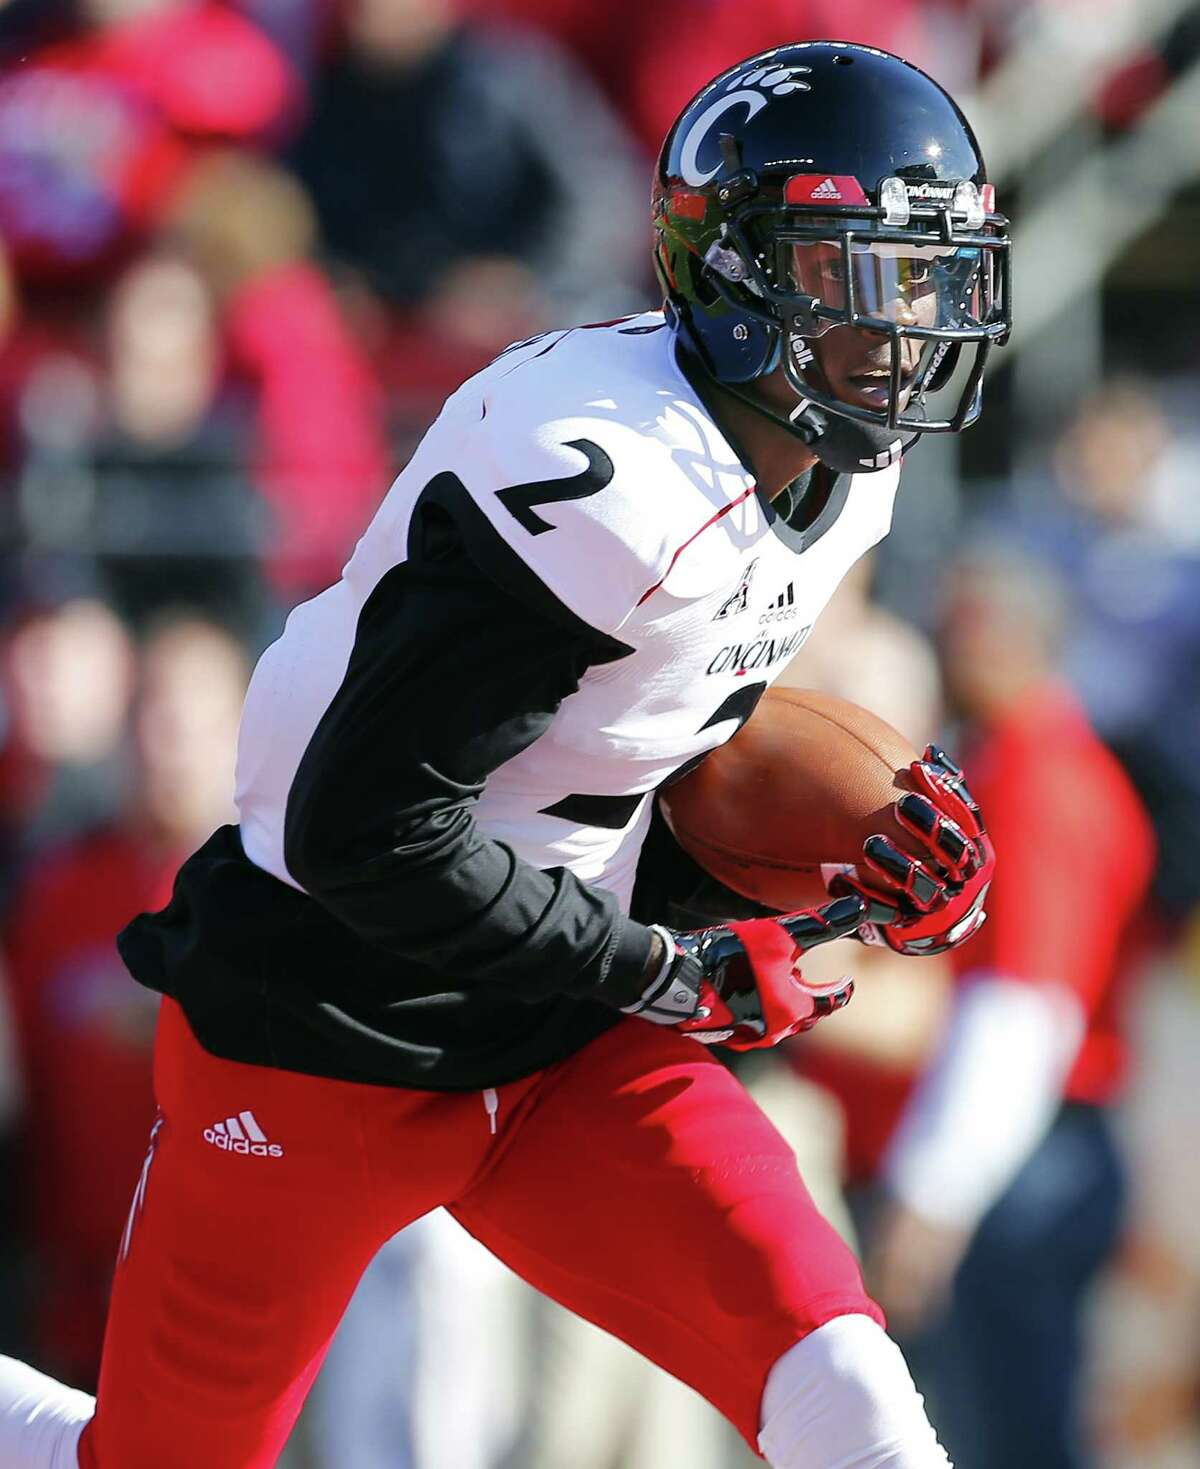 PISCATAWAY, NJ - NOVEMBER 16: Mekale McKay #2 of the Cincinnati Bearcats runs to to end zone for a touchdown during the first quarter against the Rutgers Scarlet Knights at High Point Solutions Stadium on November 16, 2013 in Piscataway, New Jersey. Cincinnati defeated Rutgers 52-17.